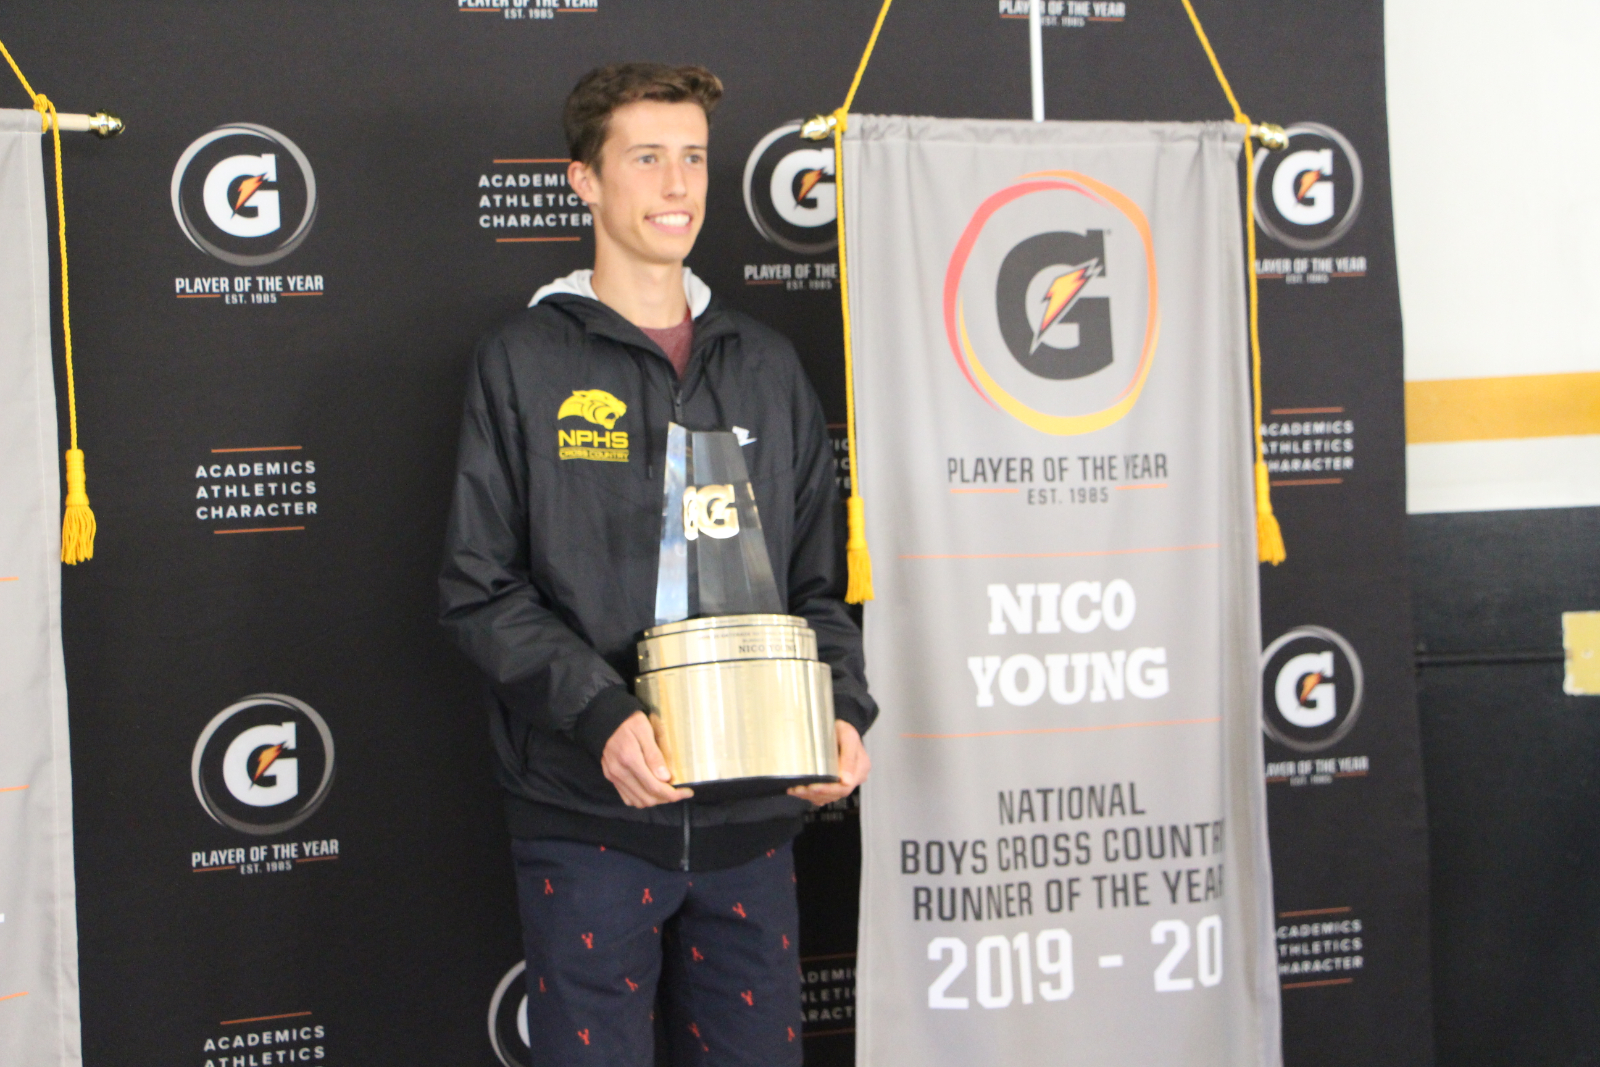 Nico Young Named Gatorade National Boys Cross Country Runner of the Year